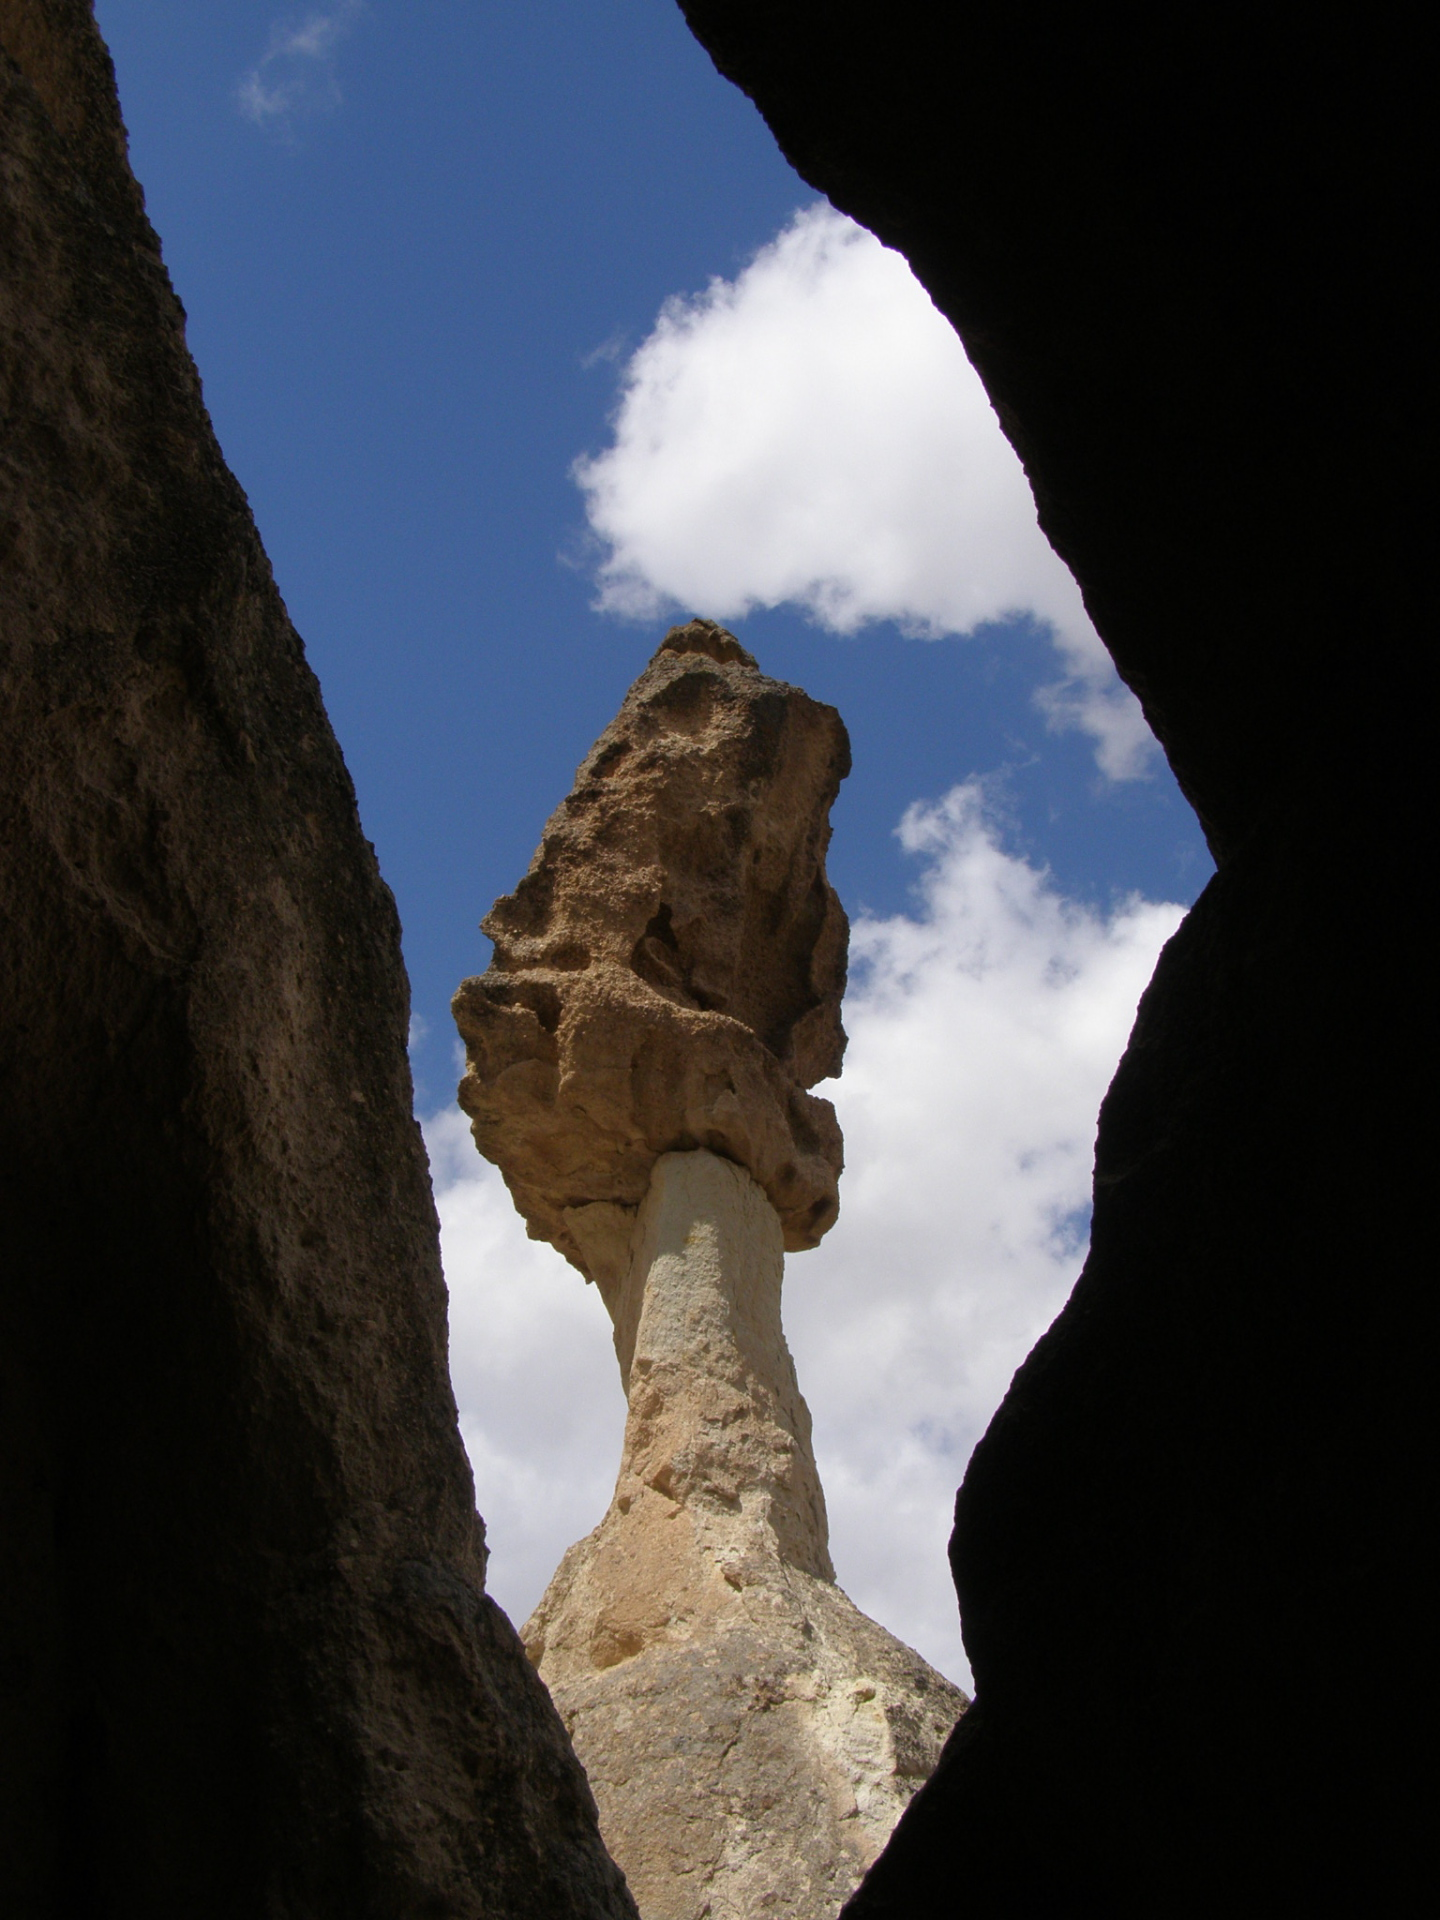 Cappadocia's oddly-shaped fairy chimneys are amazing. Cappadocia, Turkey, chap 44, You must only to love them. http://mershon.wordpress.com